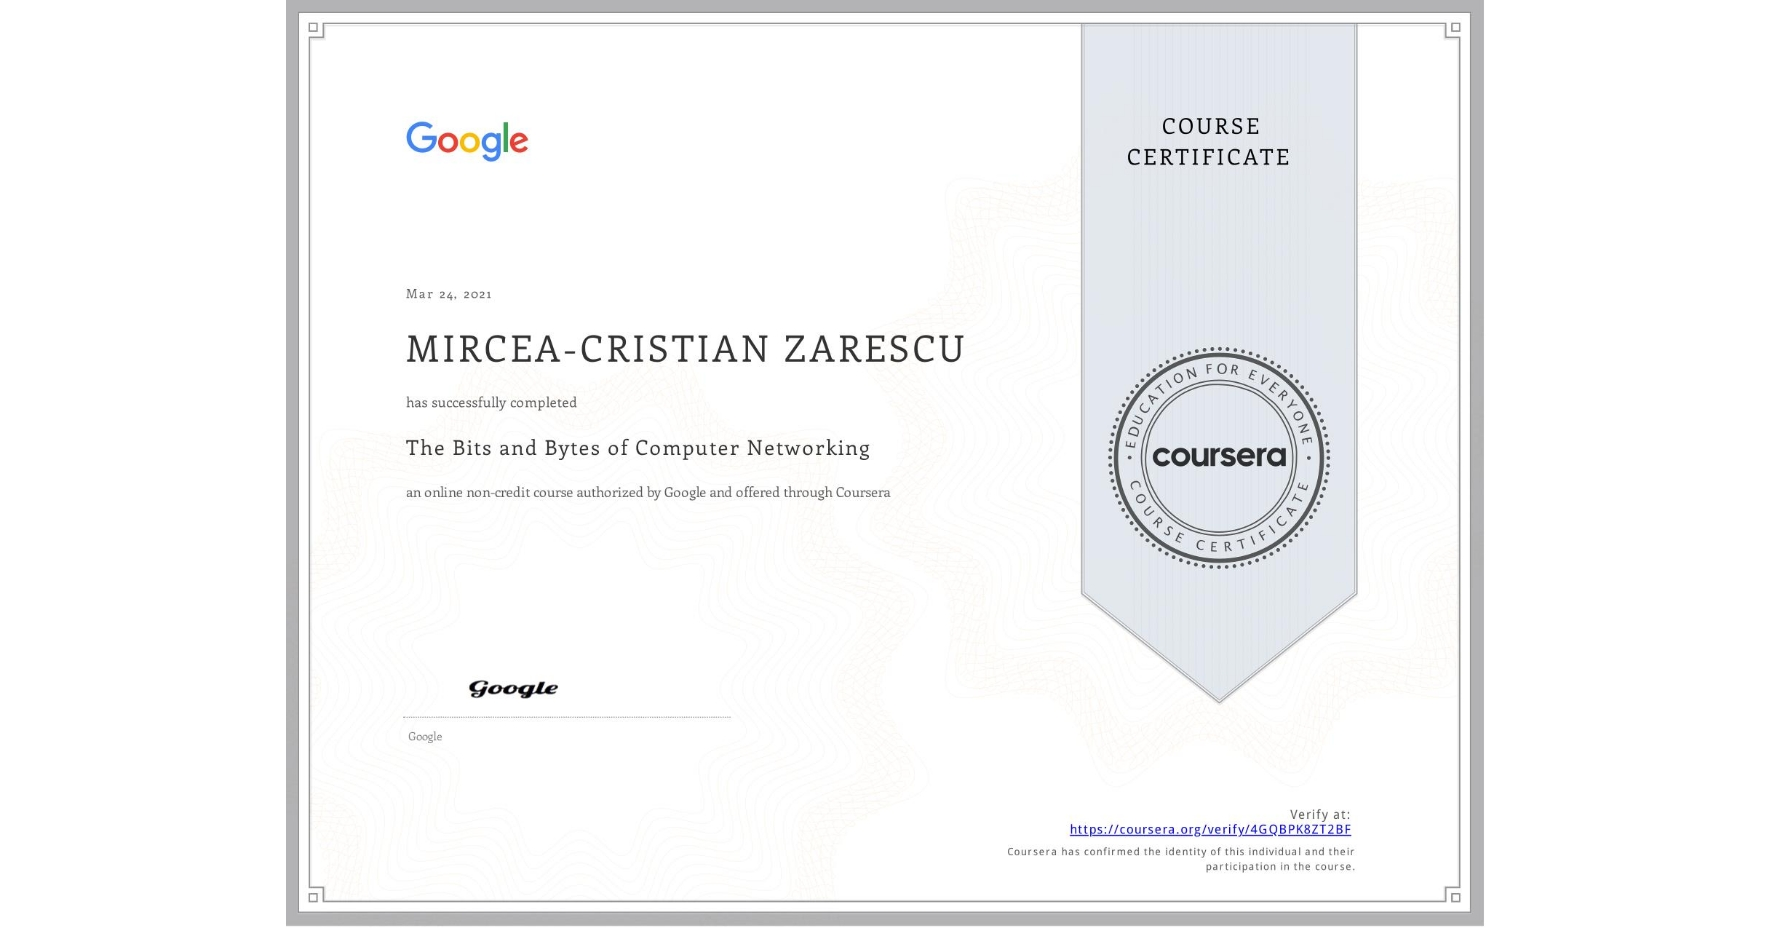 View certificate for MIRCEA-CRISTIAN ZARESCU, The Bits and Bytes of Computer Networking, an online non-credit course authorized by Google and offered through Coursera